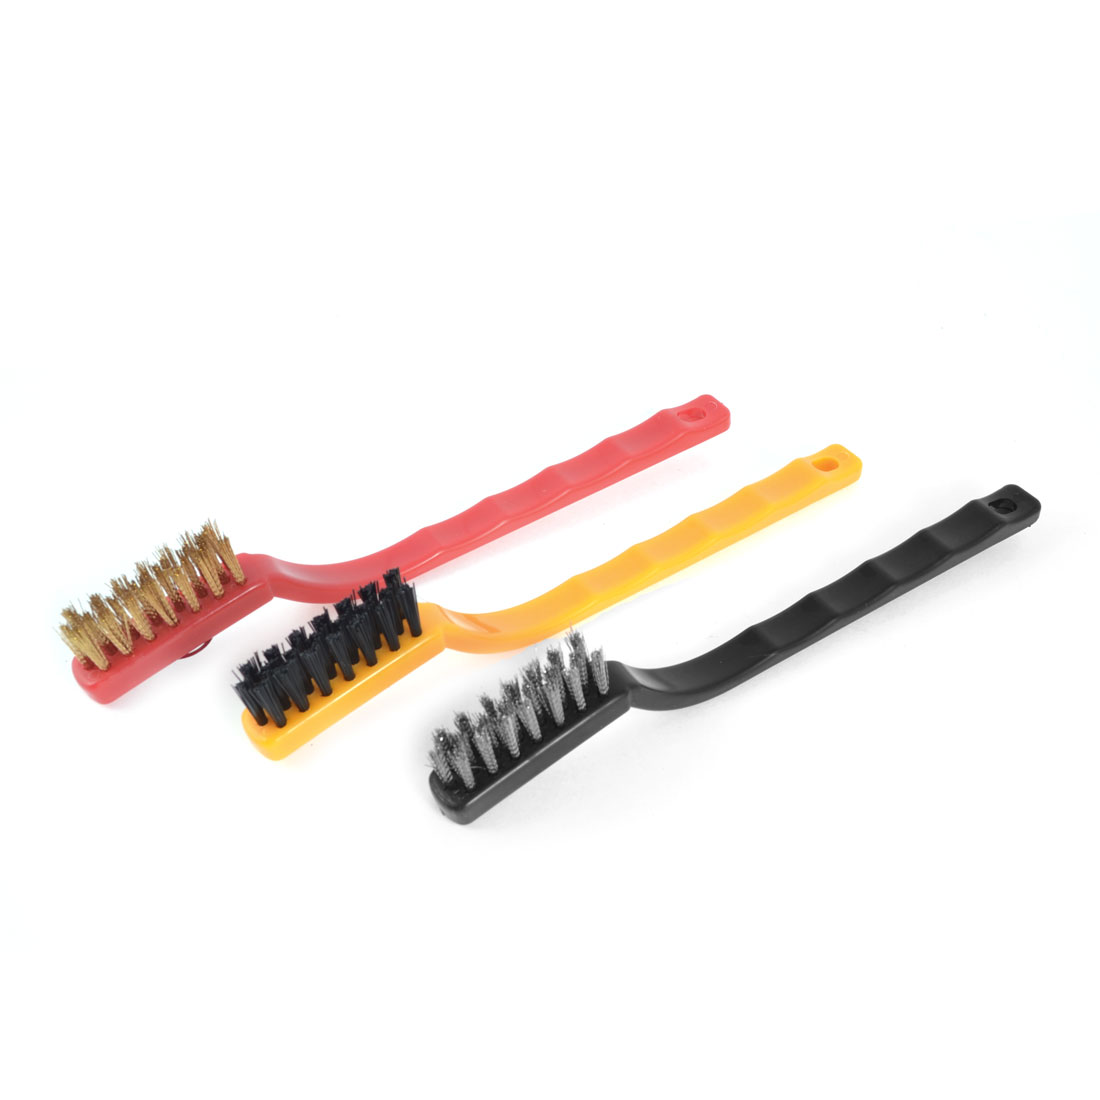 3 Pcs Vehicle Car Plastic Handle Tri Colors Metal Wire Cleaning Brushes Tool